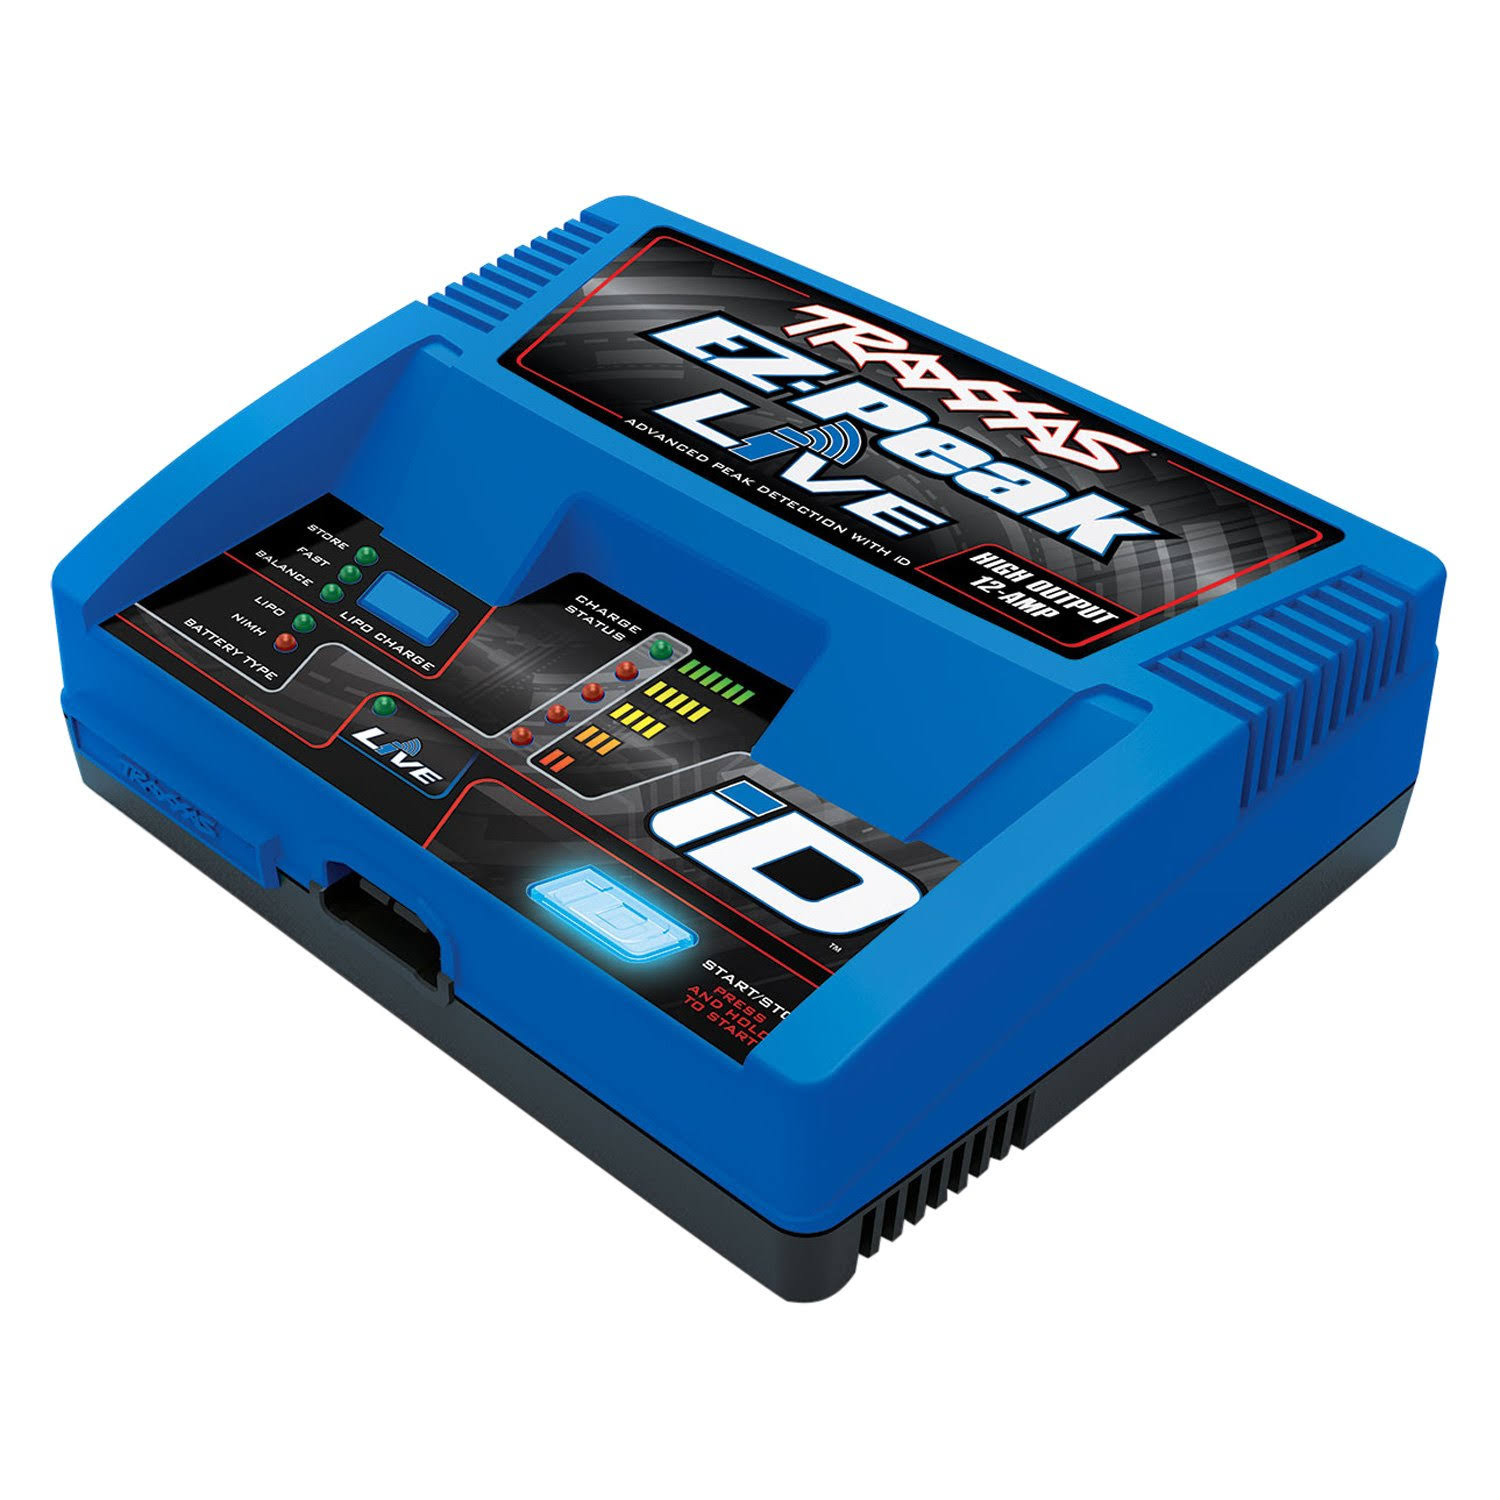 Traxxas Ez-peak Live Lipo NiMh LiPo Battery Charger - 12amp, 100W, with iD Auto Battery Identification